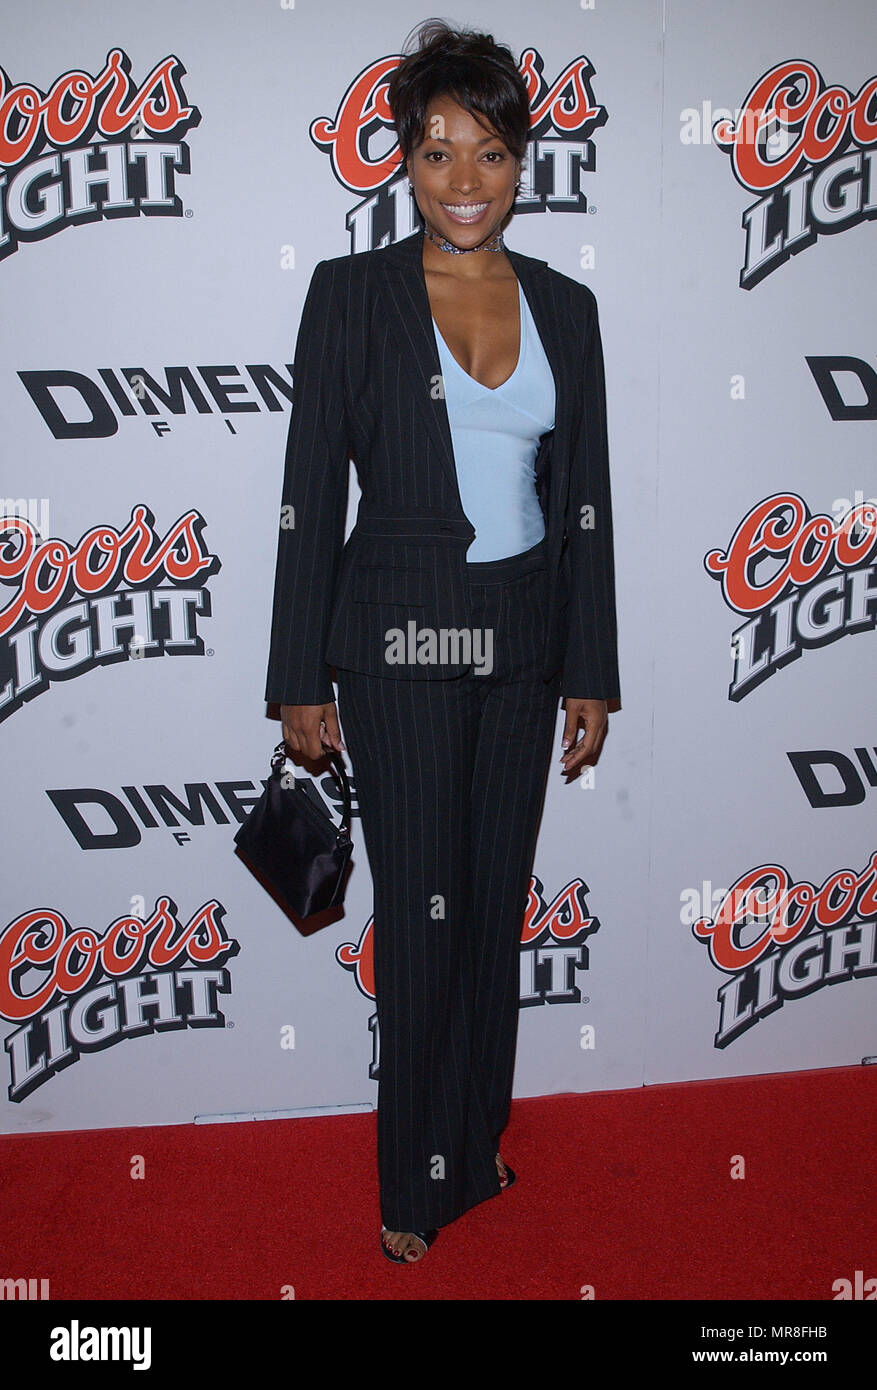 Kellita Smith arriving at the